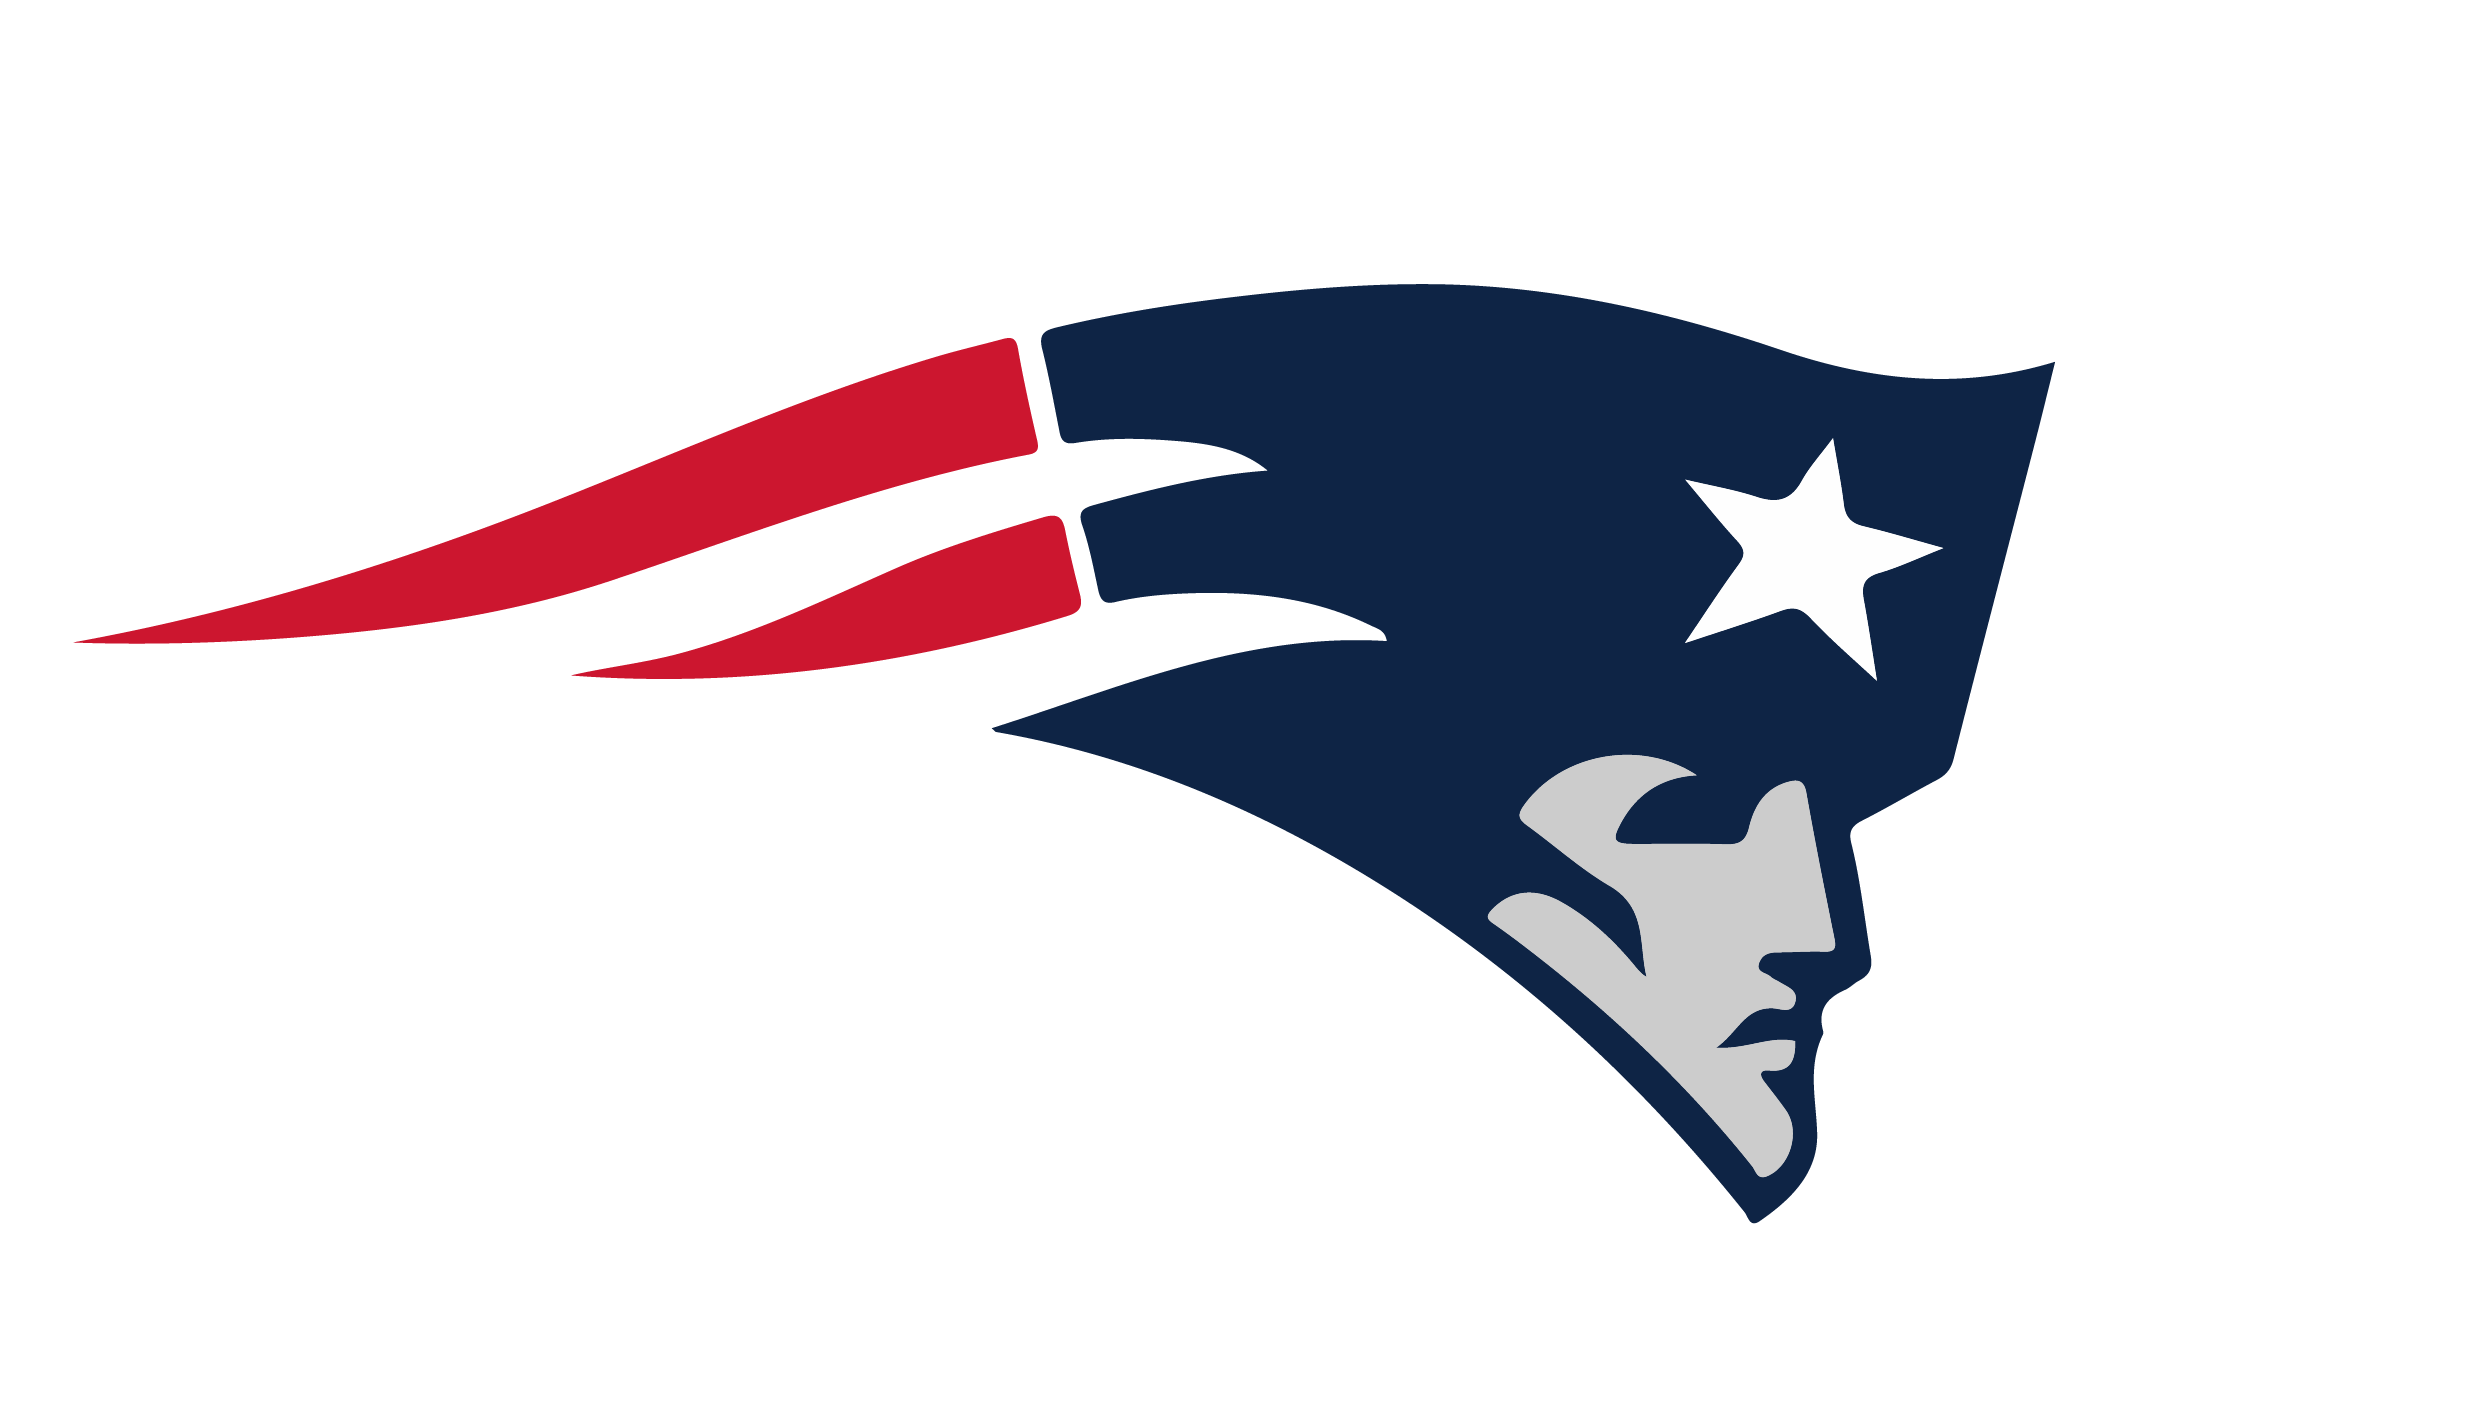 Pin By Elite Prestige On Help New England Patriots Logo Patriots Logo New England Patriots